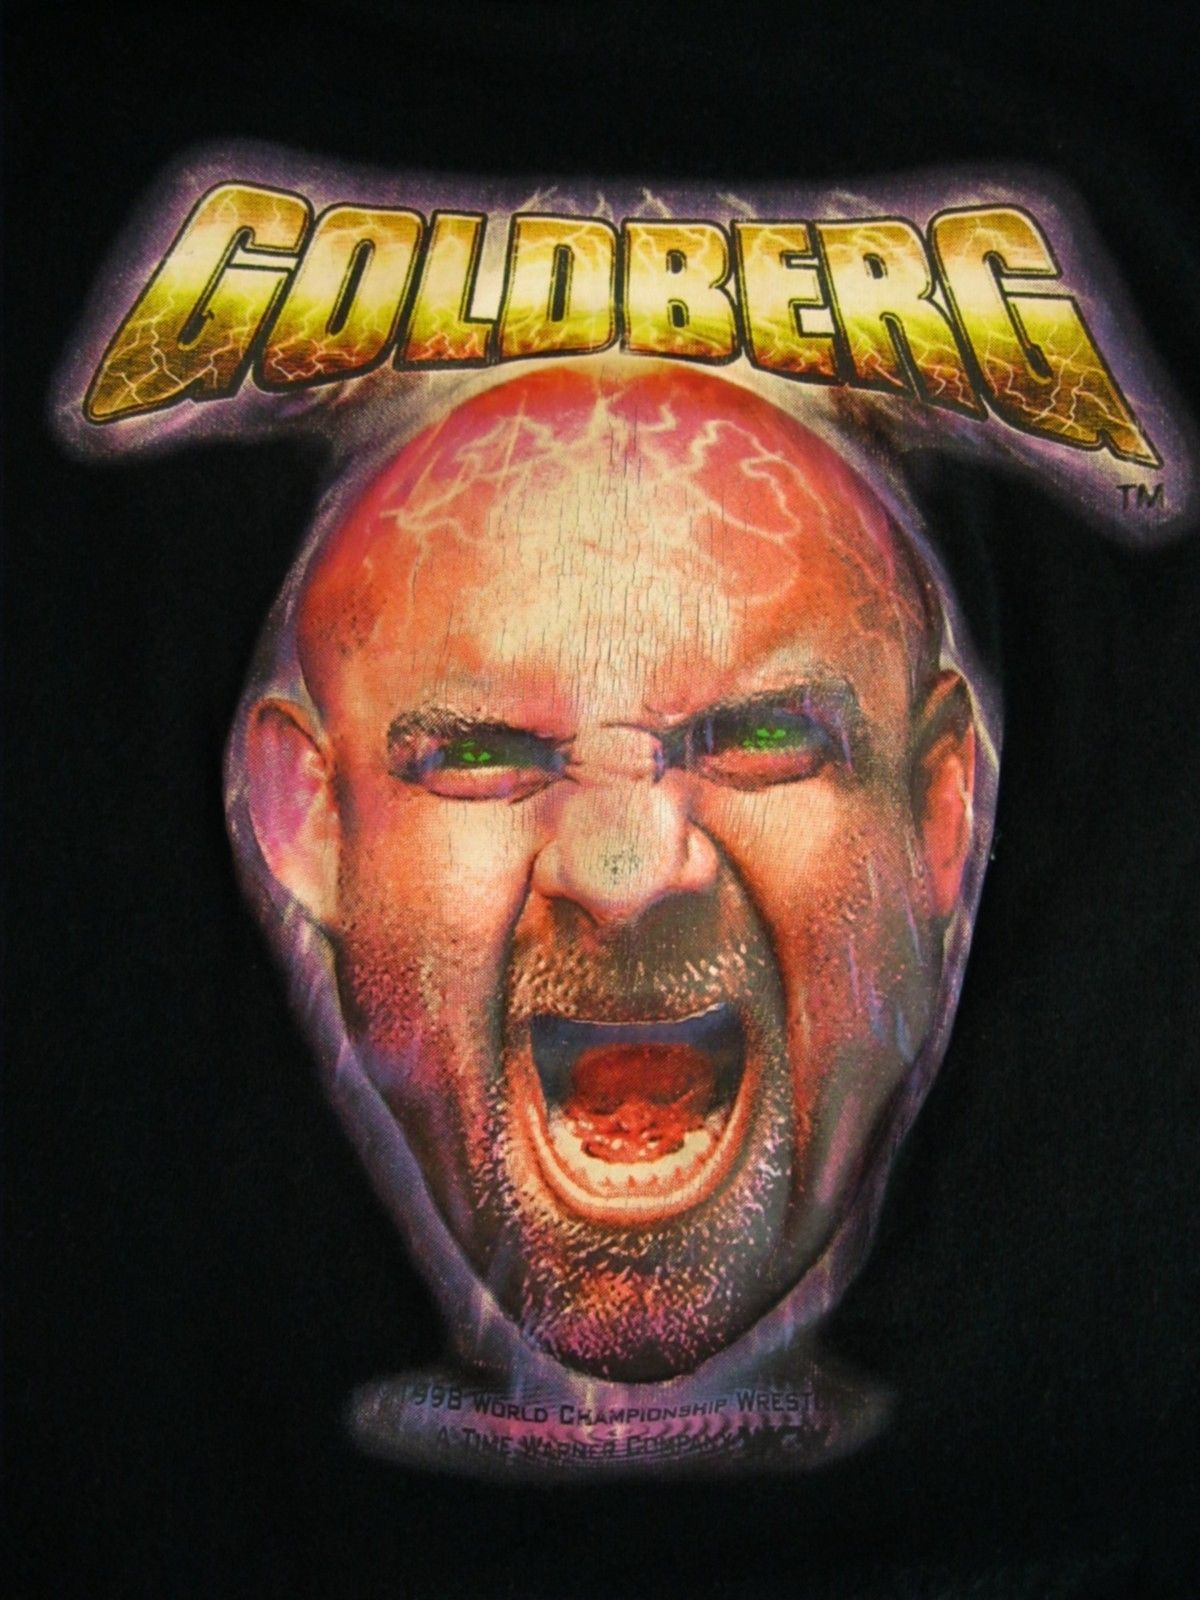 Bill Goldberg 3-D shirt 3